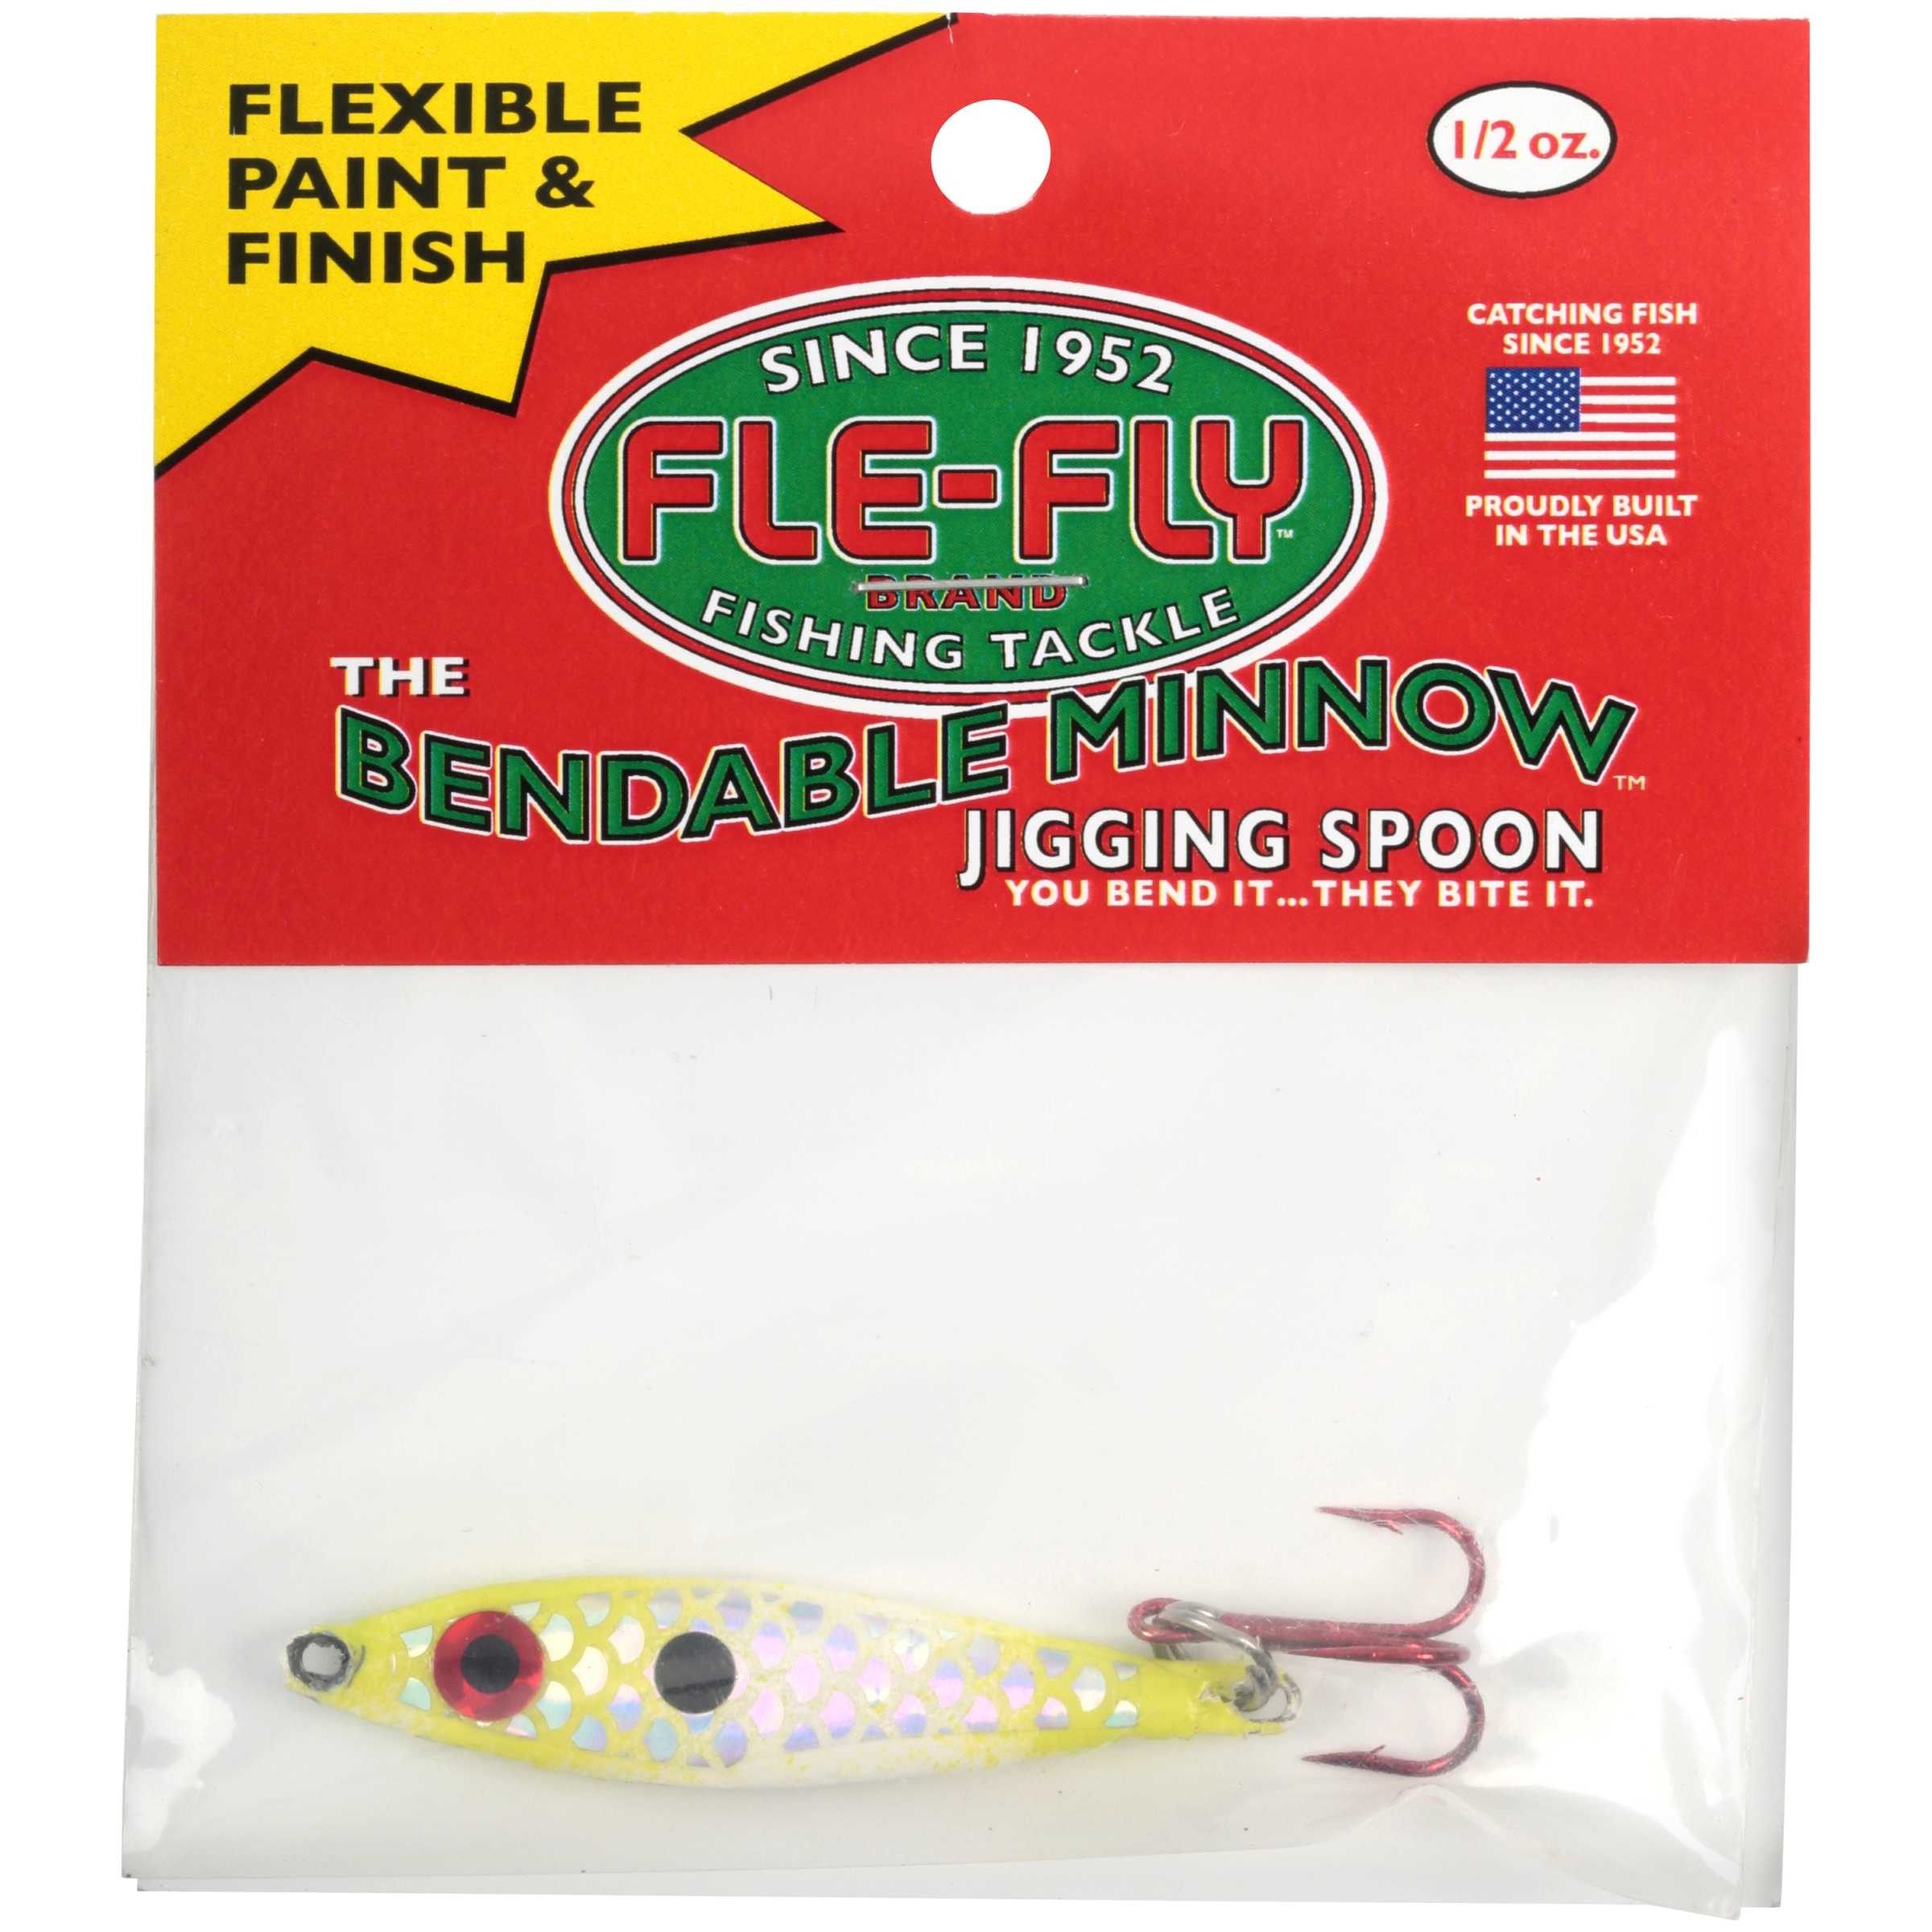 Pack of 6 Fle-Fly 1oz Bendable Minnow Jigging Spoon